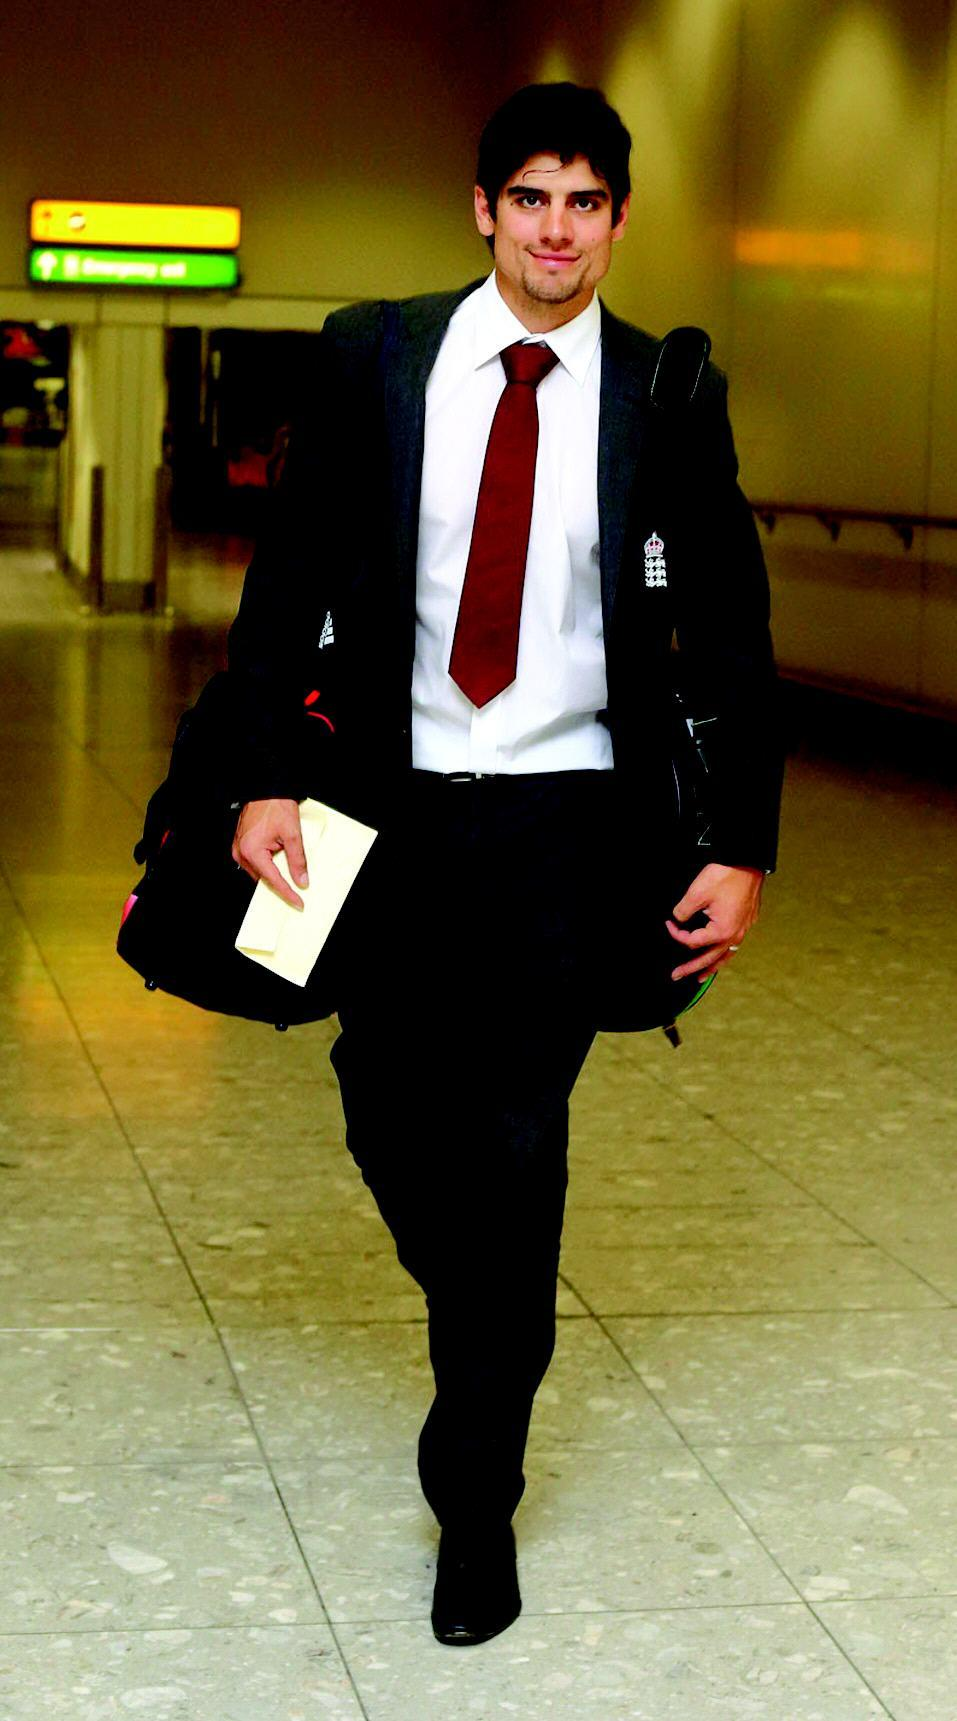 Alastair Cook England Cricket Player Full Picture in AirPort